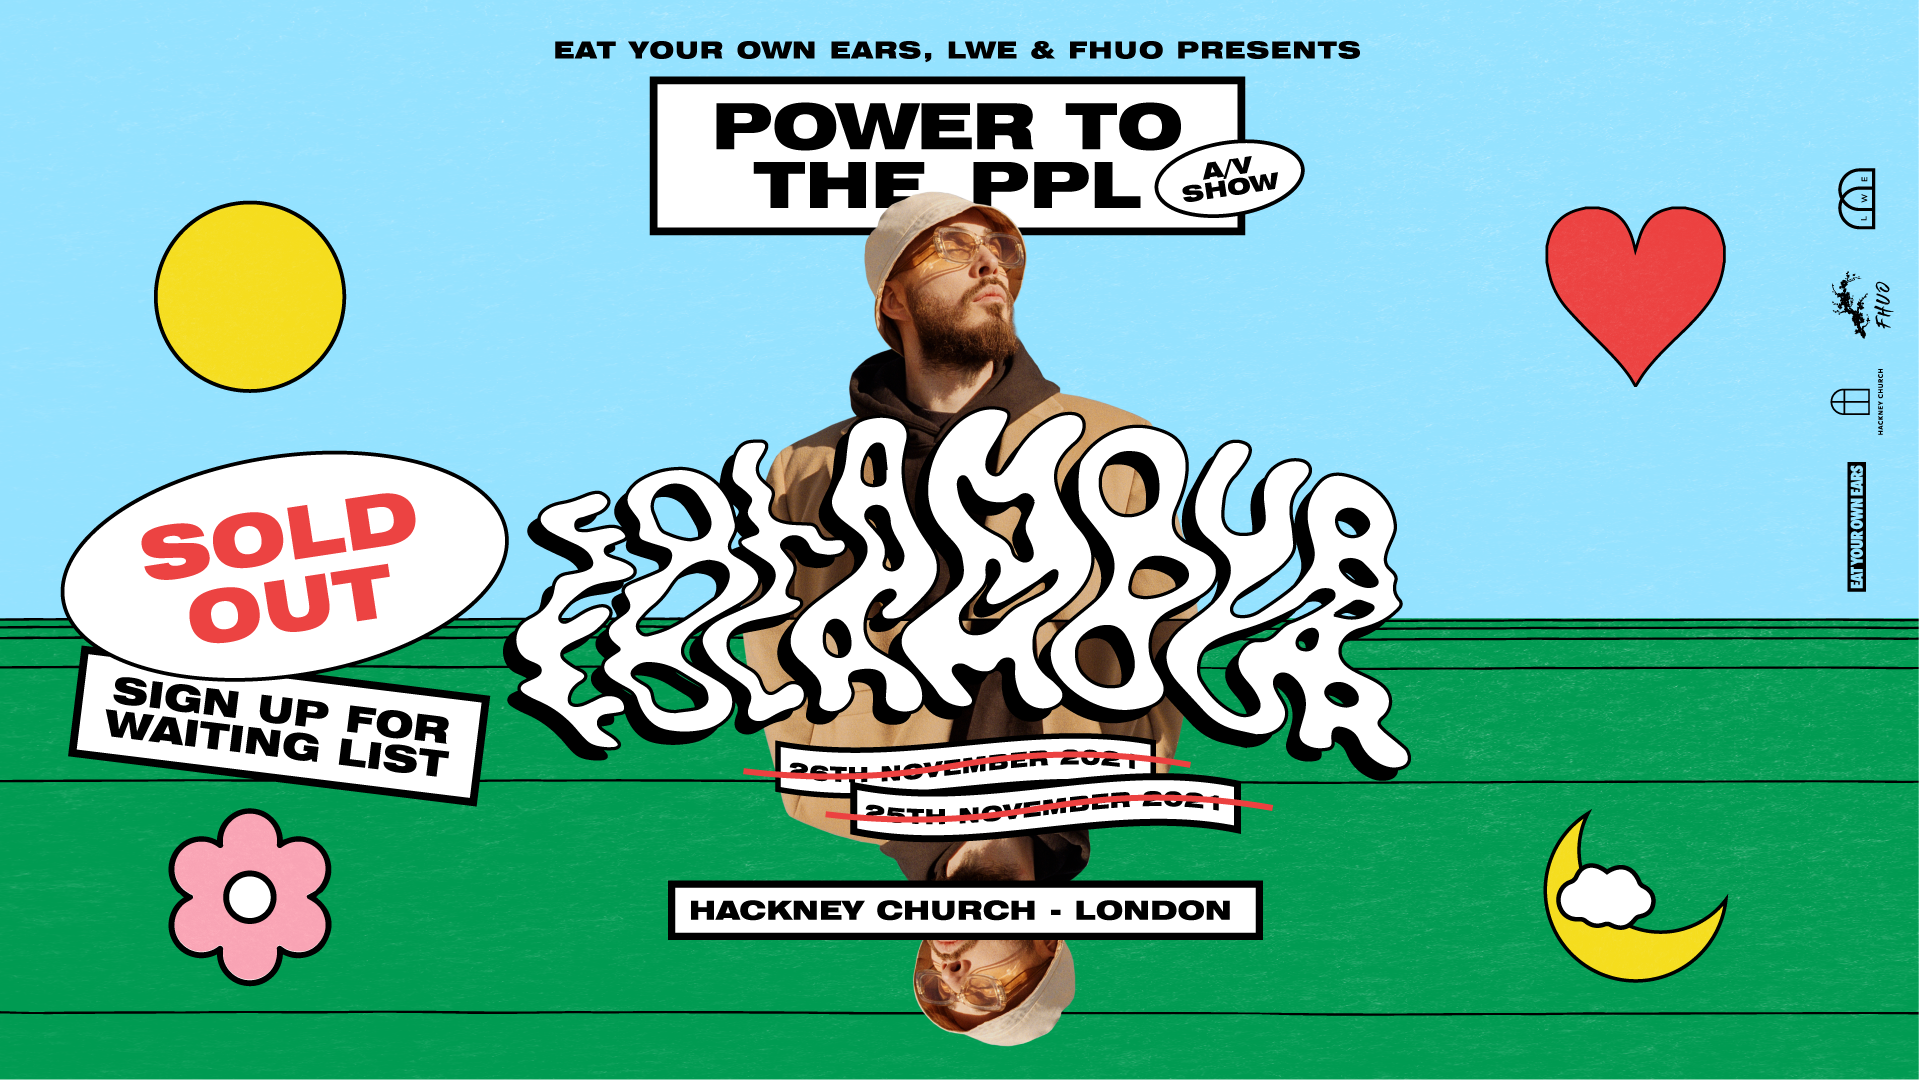 Folamour: Power to the PPL A/V 2nd Date